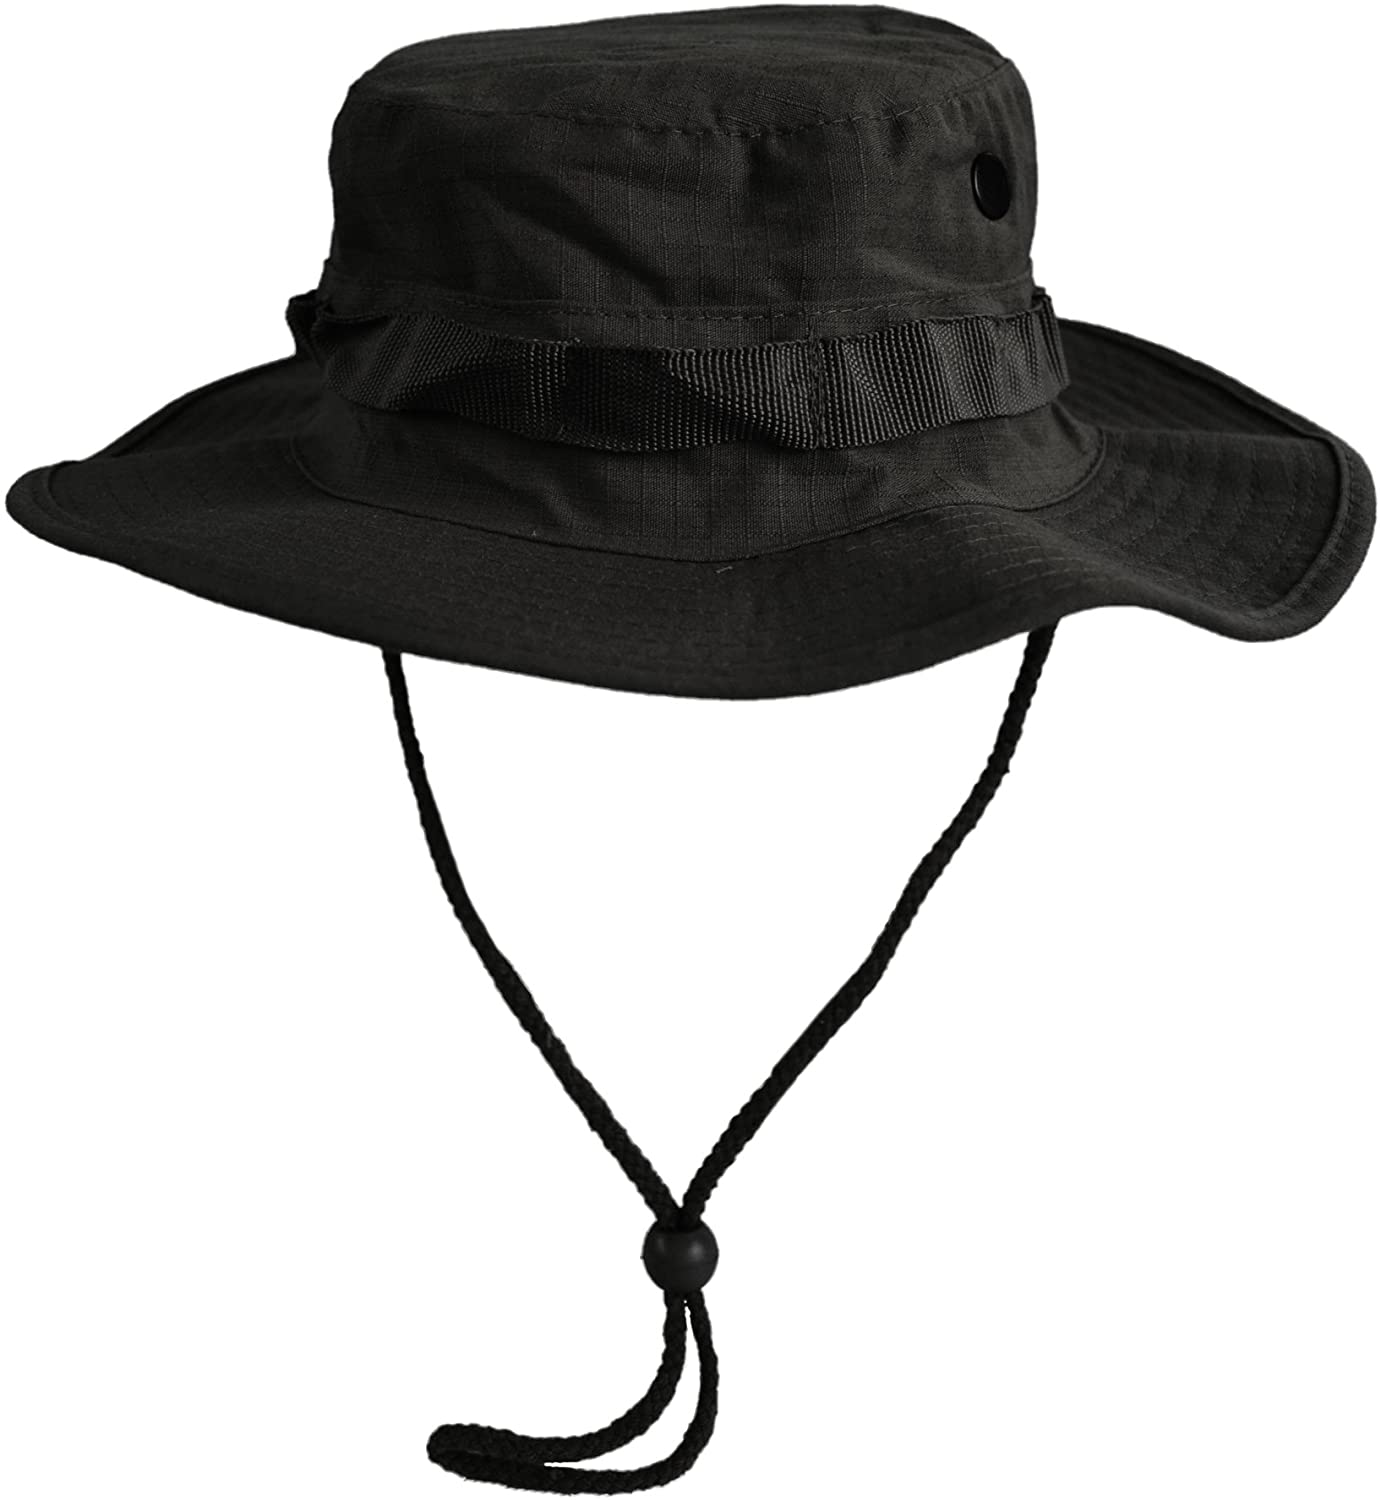 CamoOutdoor GI Ripstop Boonie Bush Jungle Army Hat Cap Black, Size S